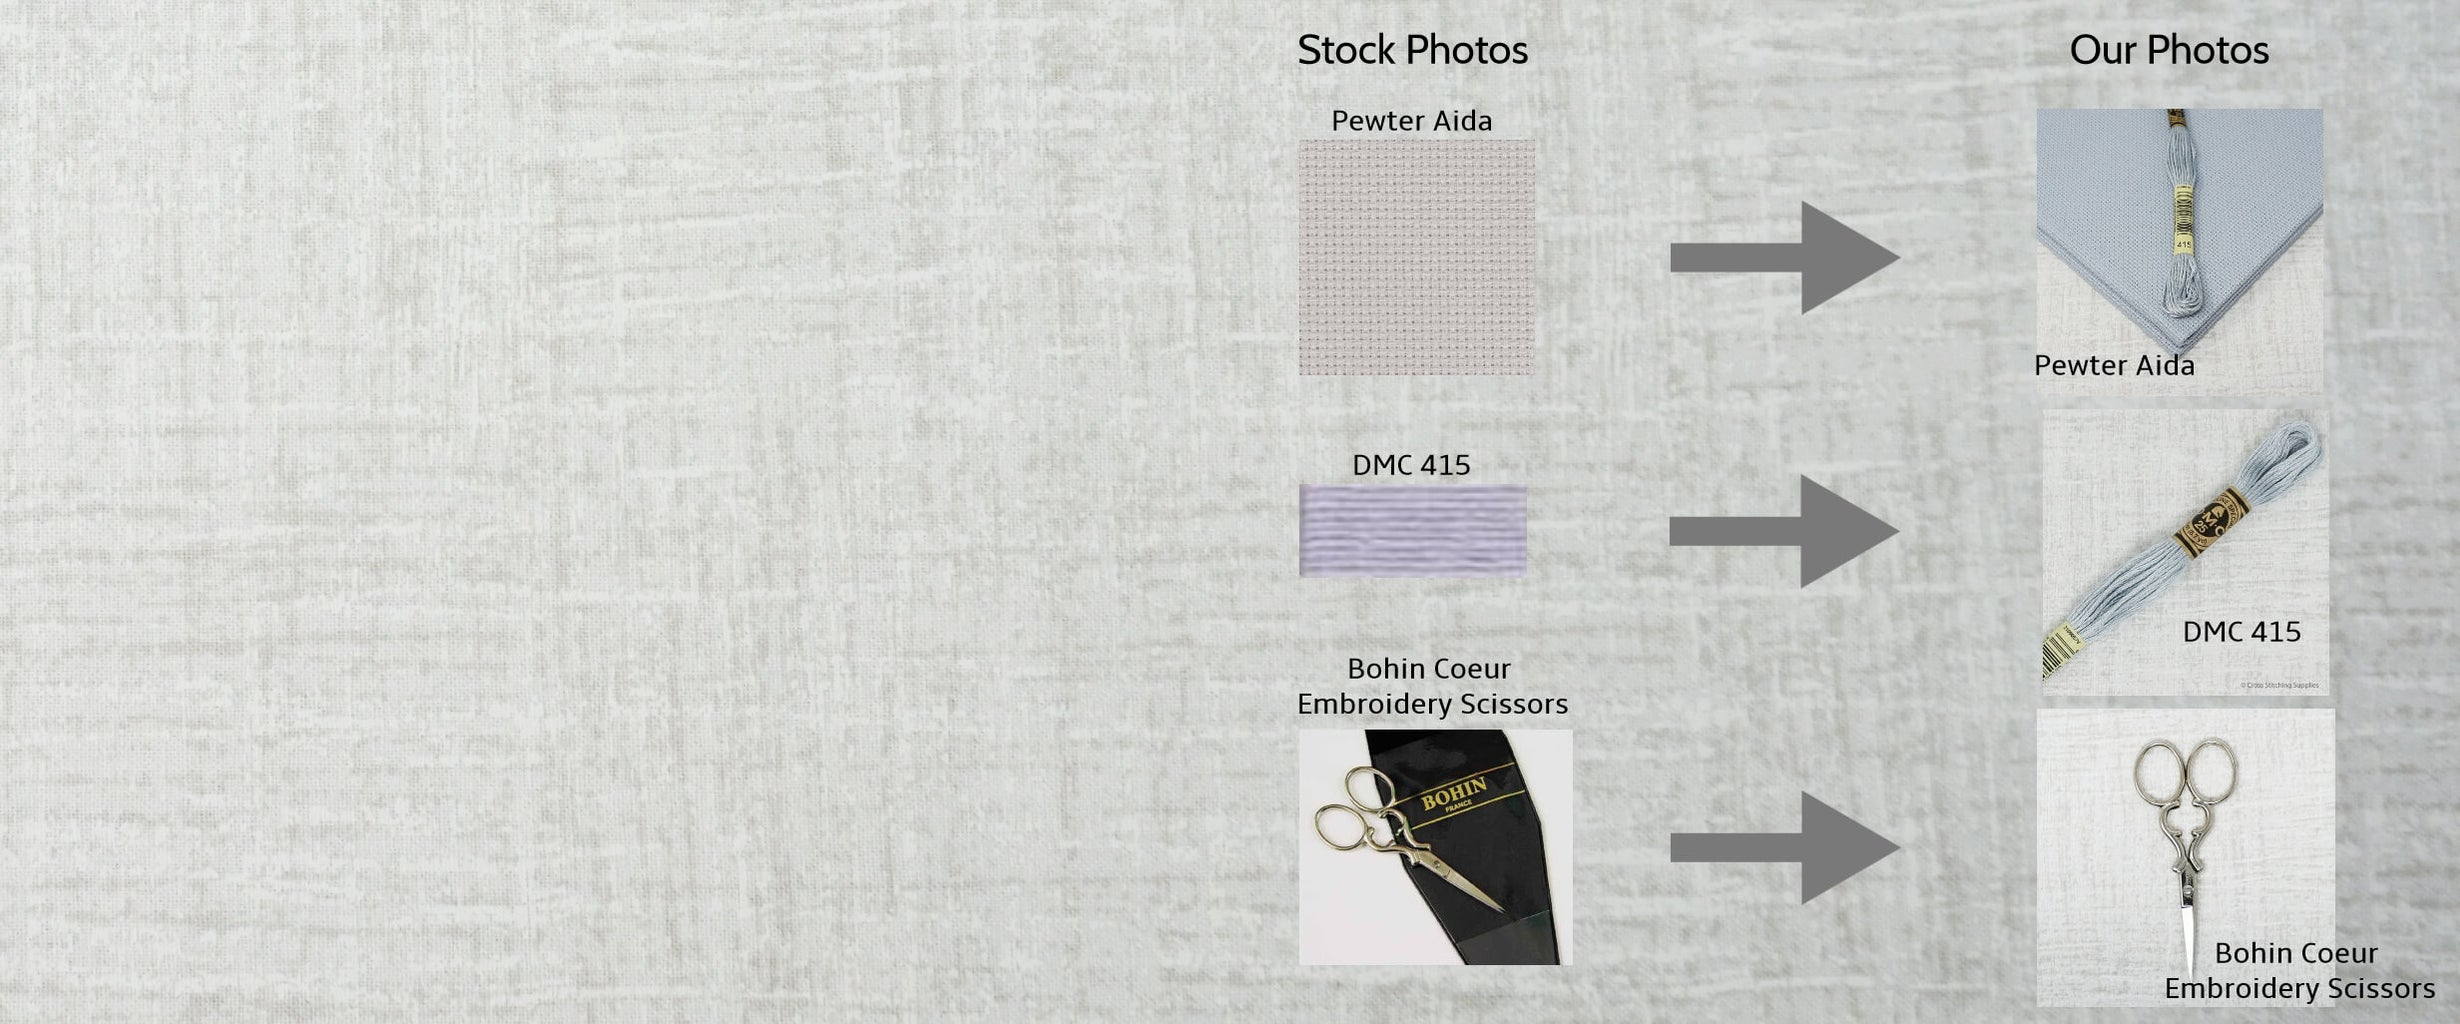 No Stock photos used on Cross Stitching Supplies